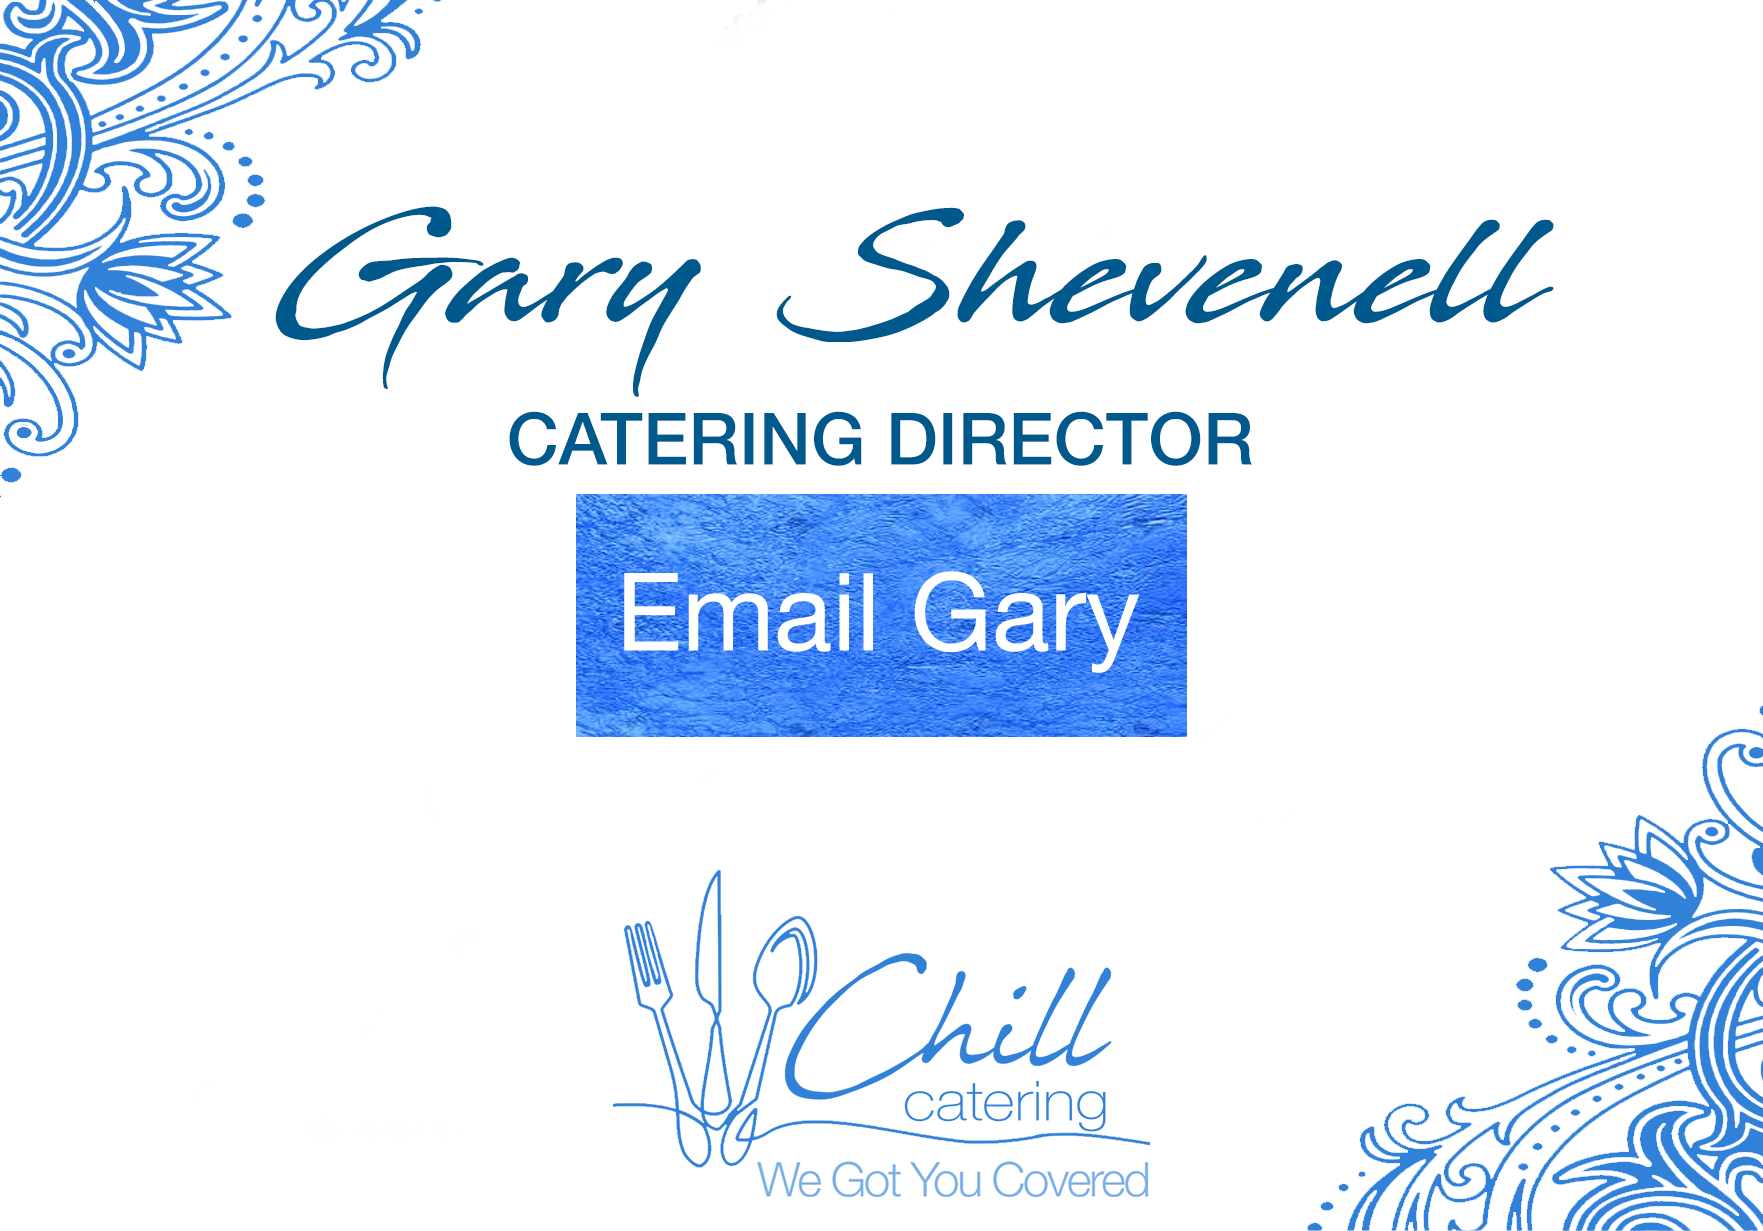 catering manager portsmouth gary shevenell